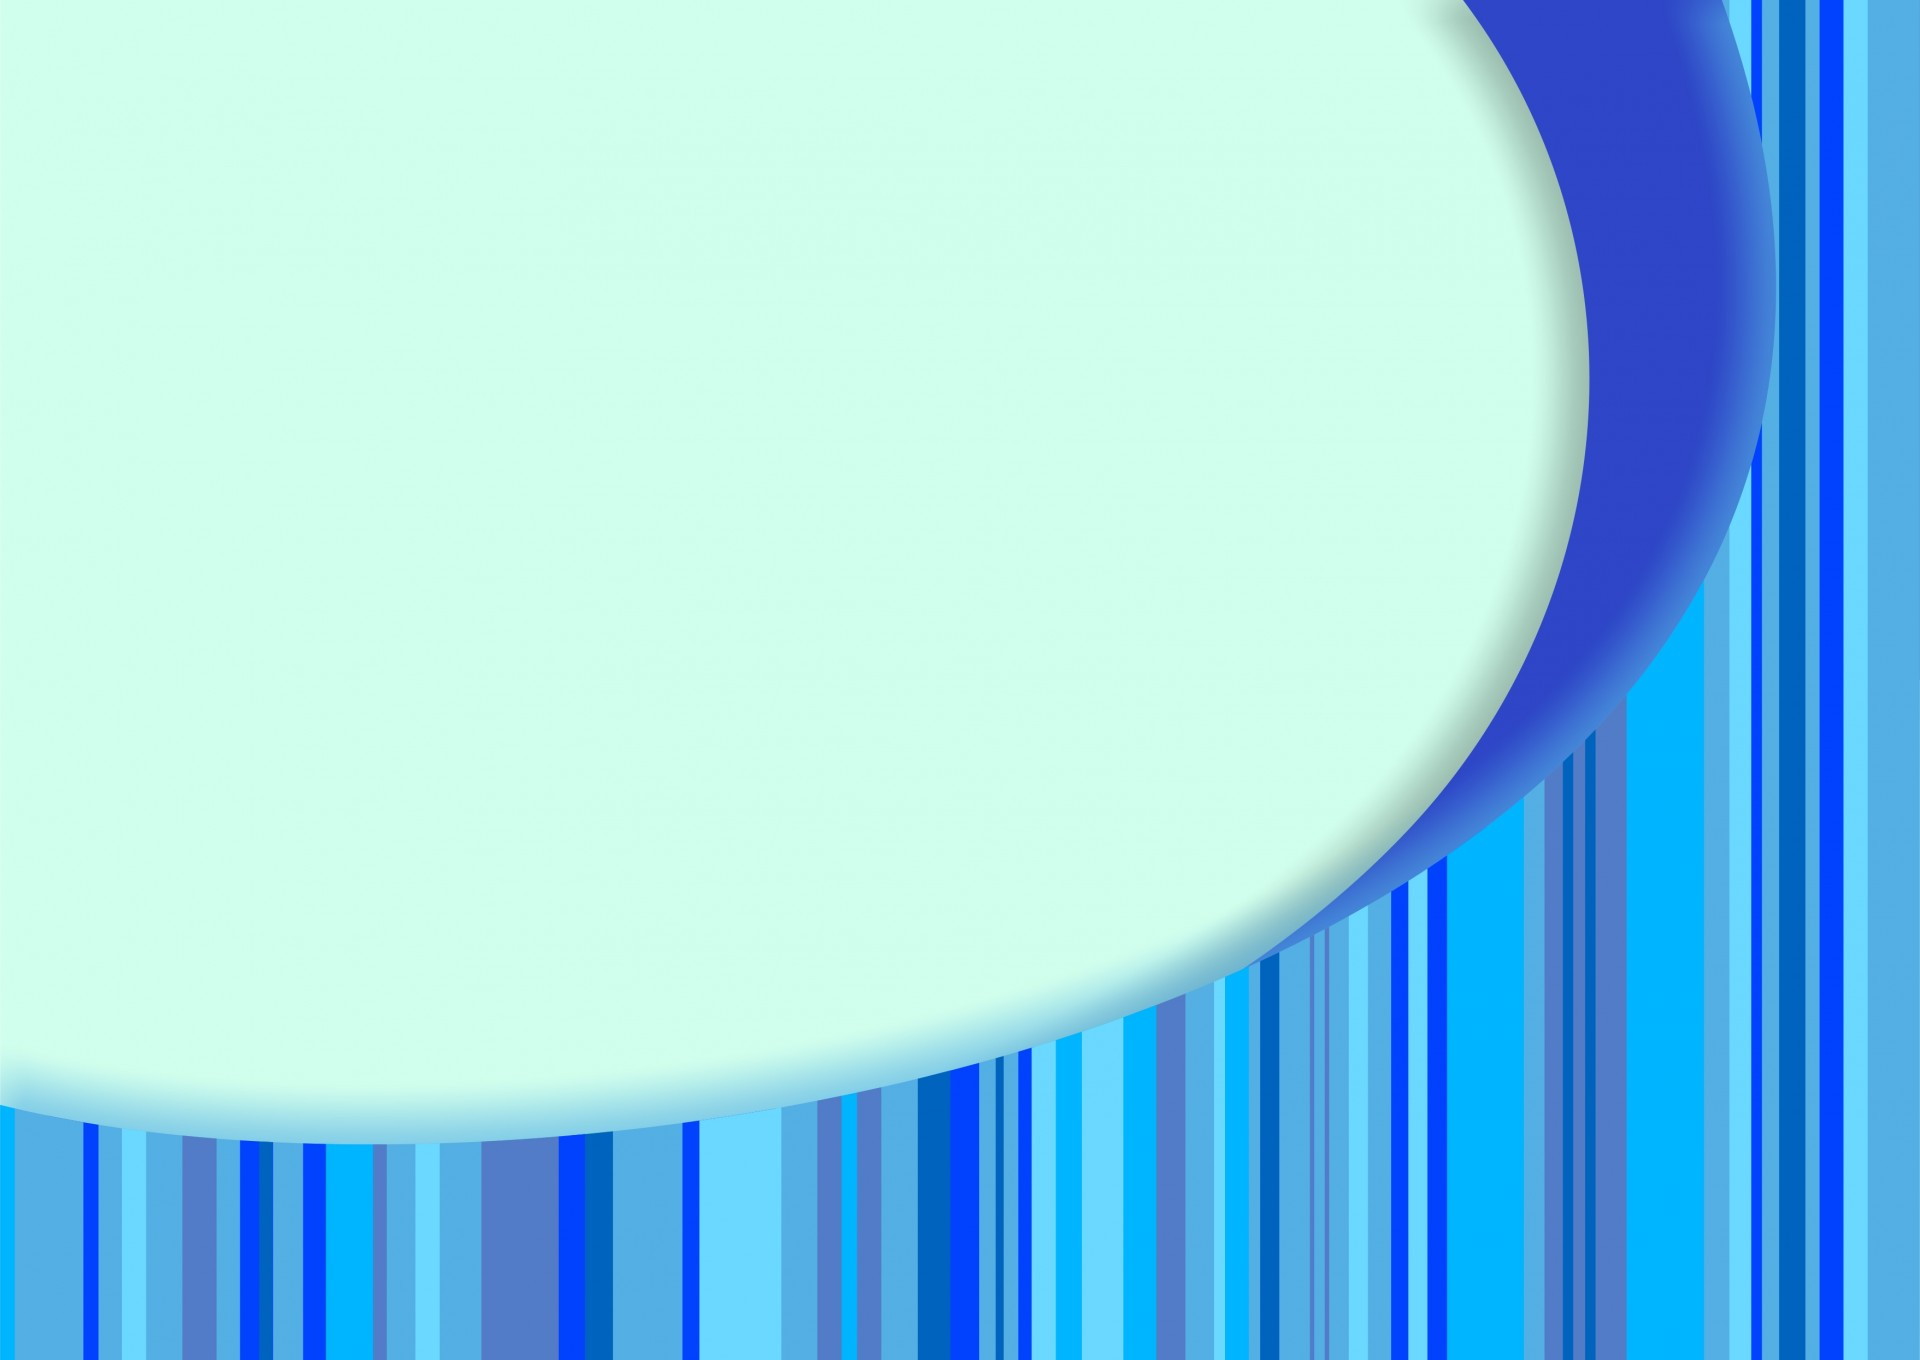 Blue striped background clipart banner free Clipart,clip art,illustration,graphic,abstract - free photo from ... banner free